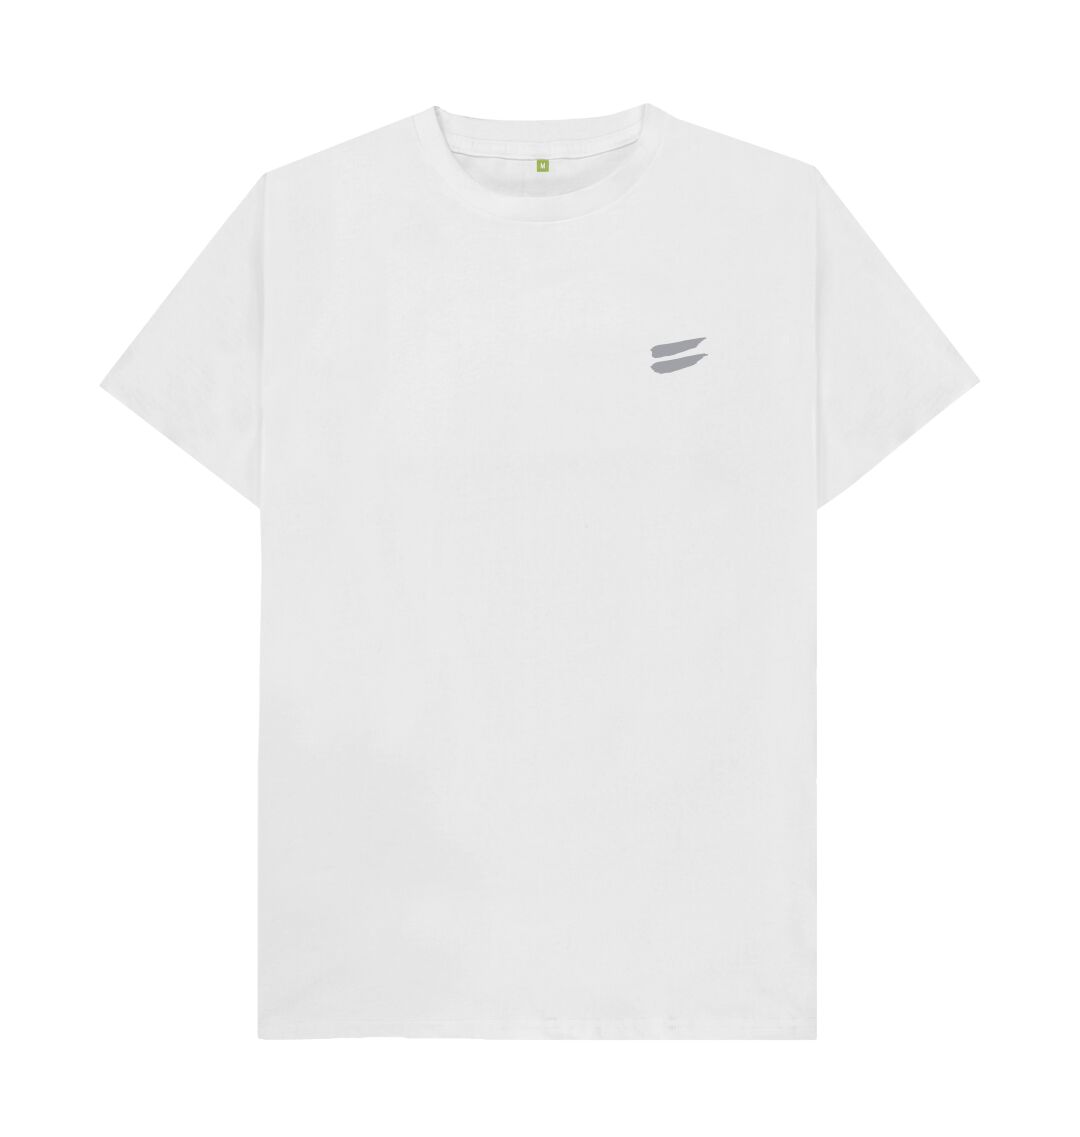 White Tribe Tee in Steel - Men's